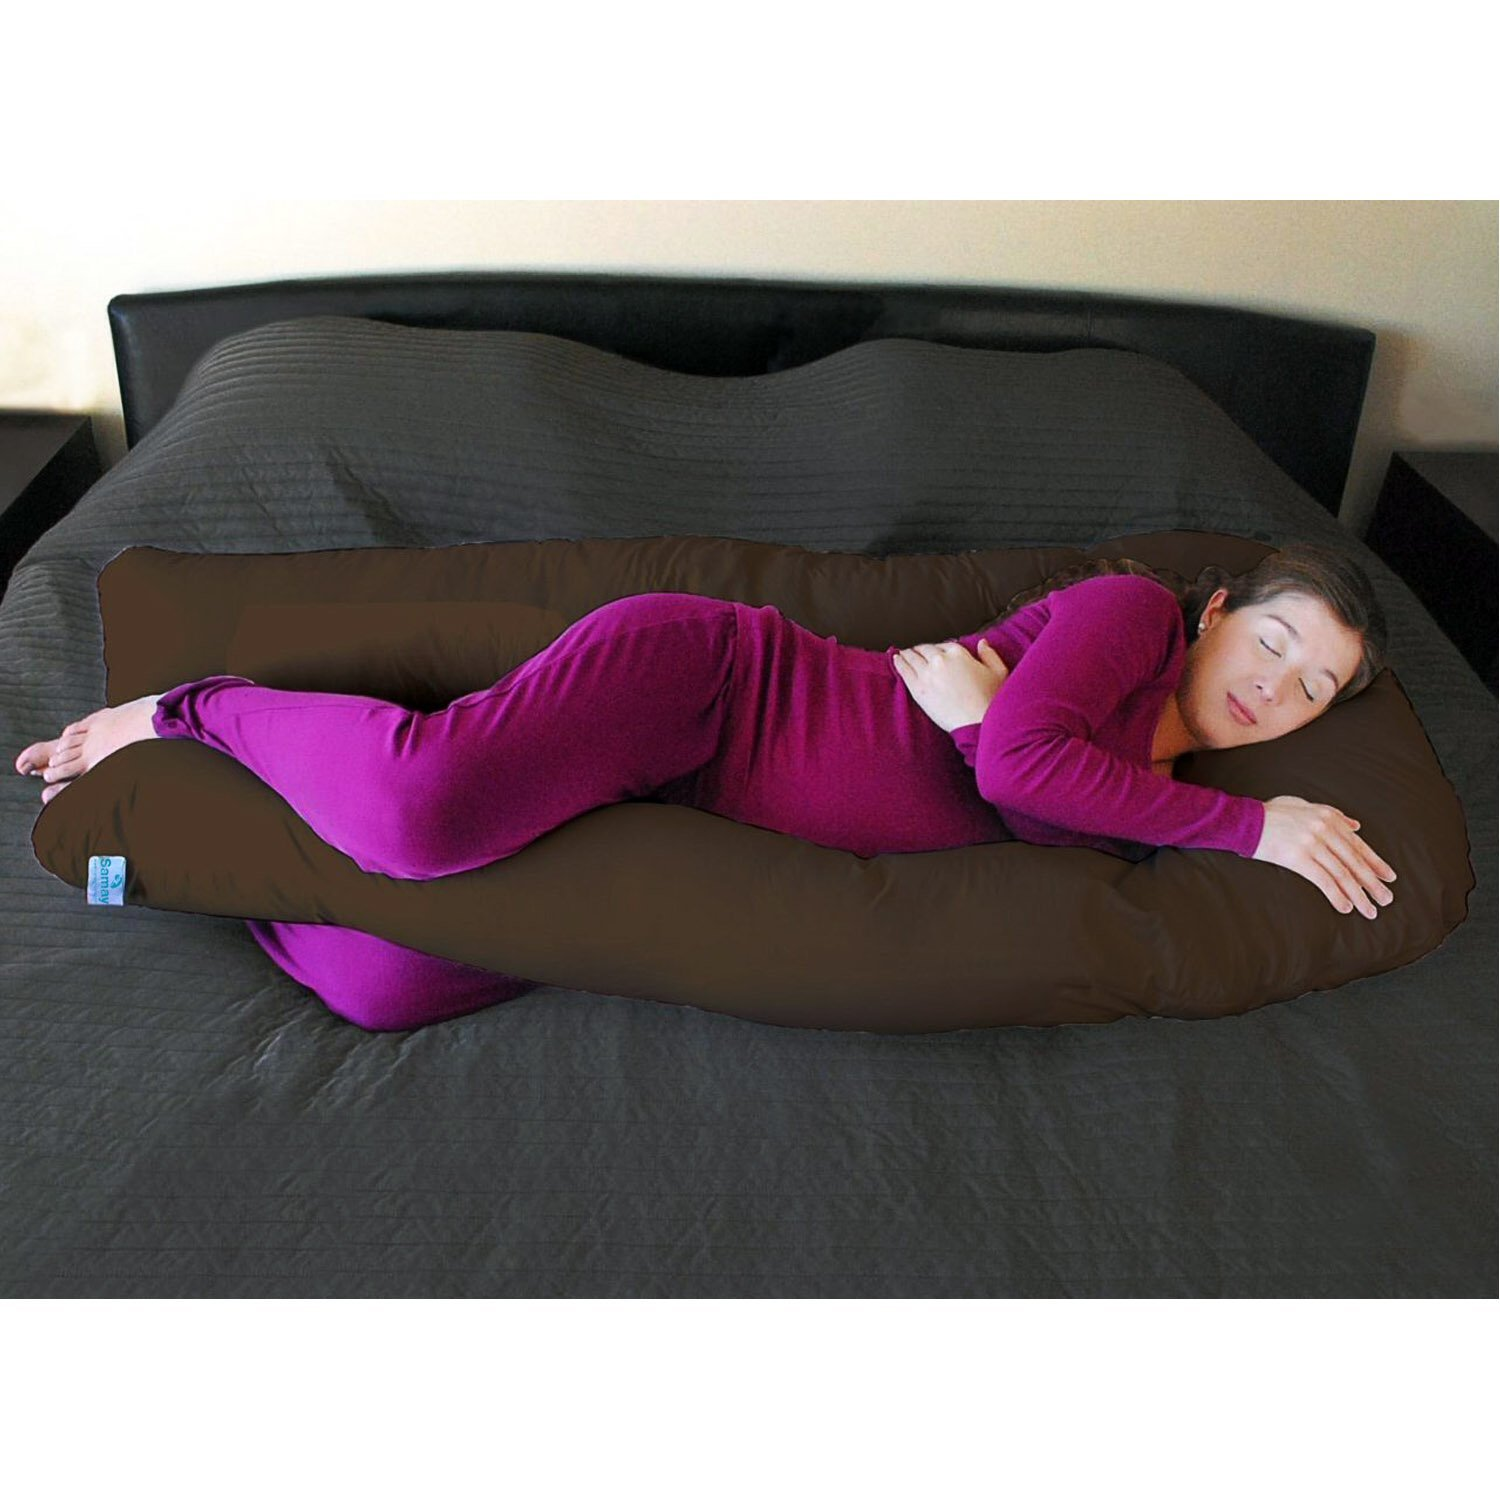 Extra Light Brown Full Body Maternity Pillow U Shaped With Easy on-off Zippered Cover - Perfect to Cuddle / Hug